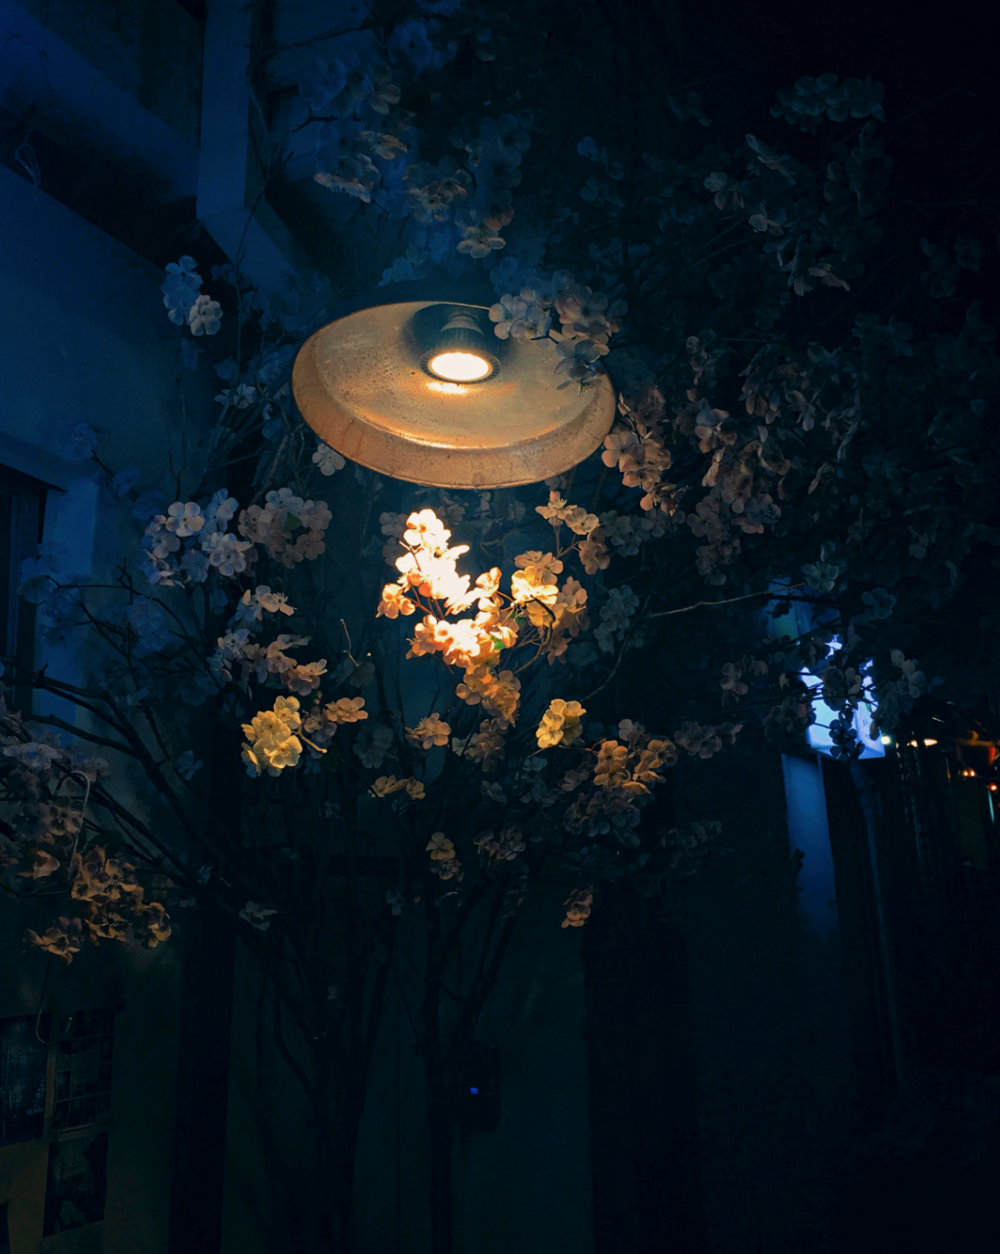 Flowers at night. Photo by An Rong Xu.